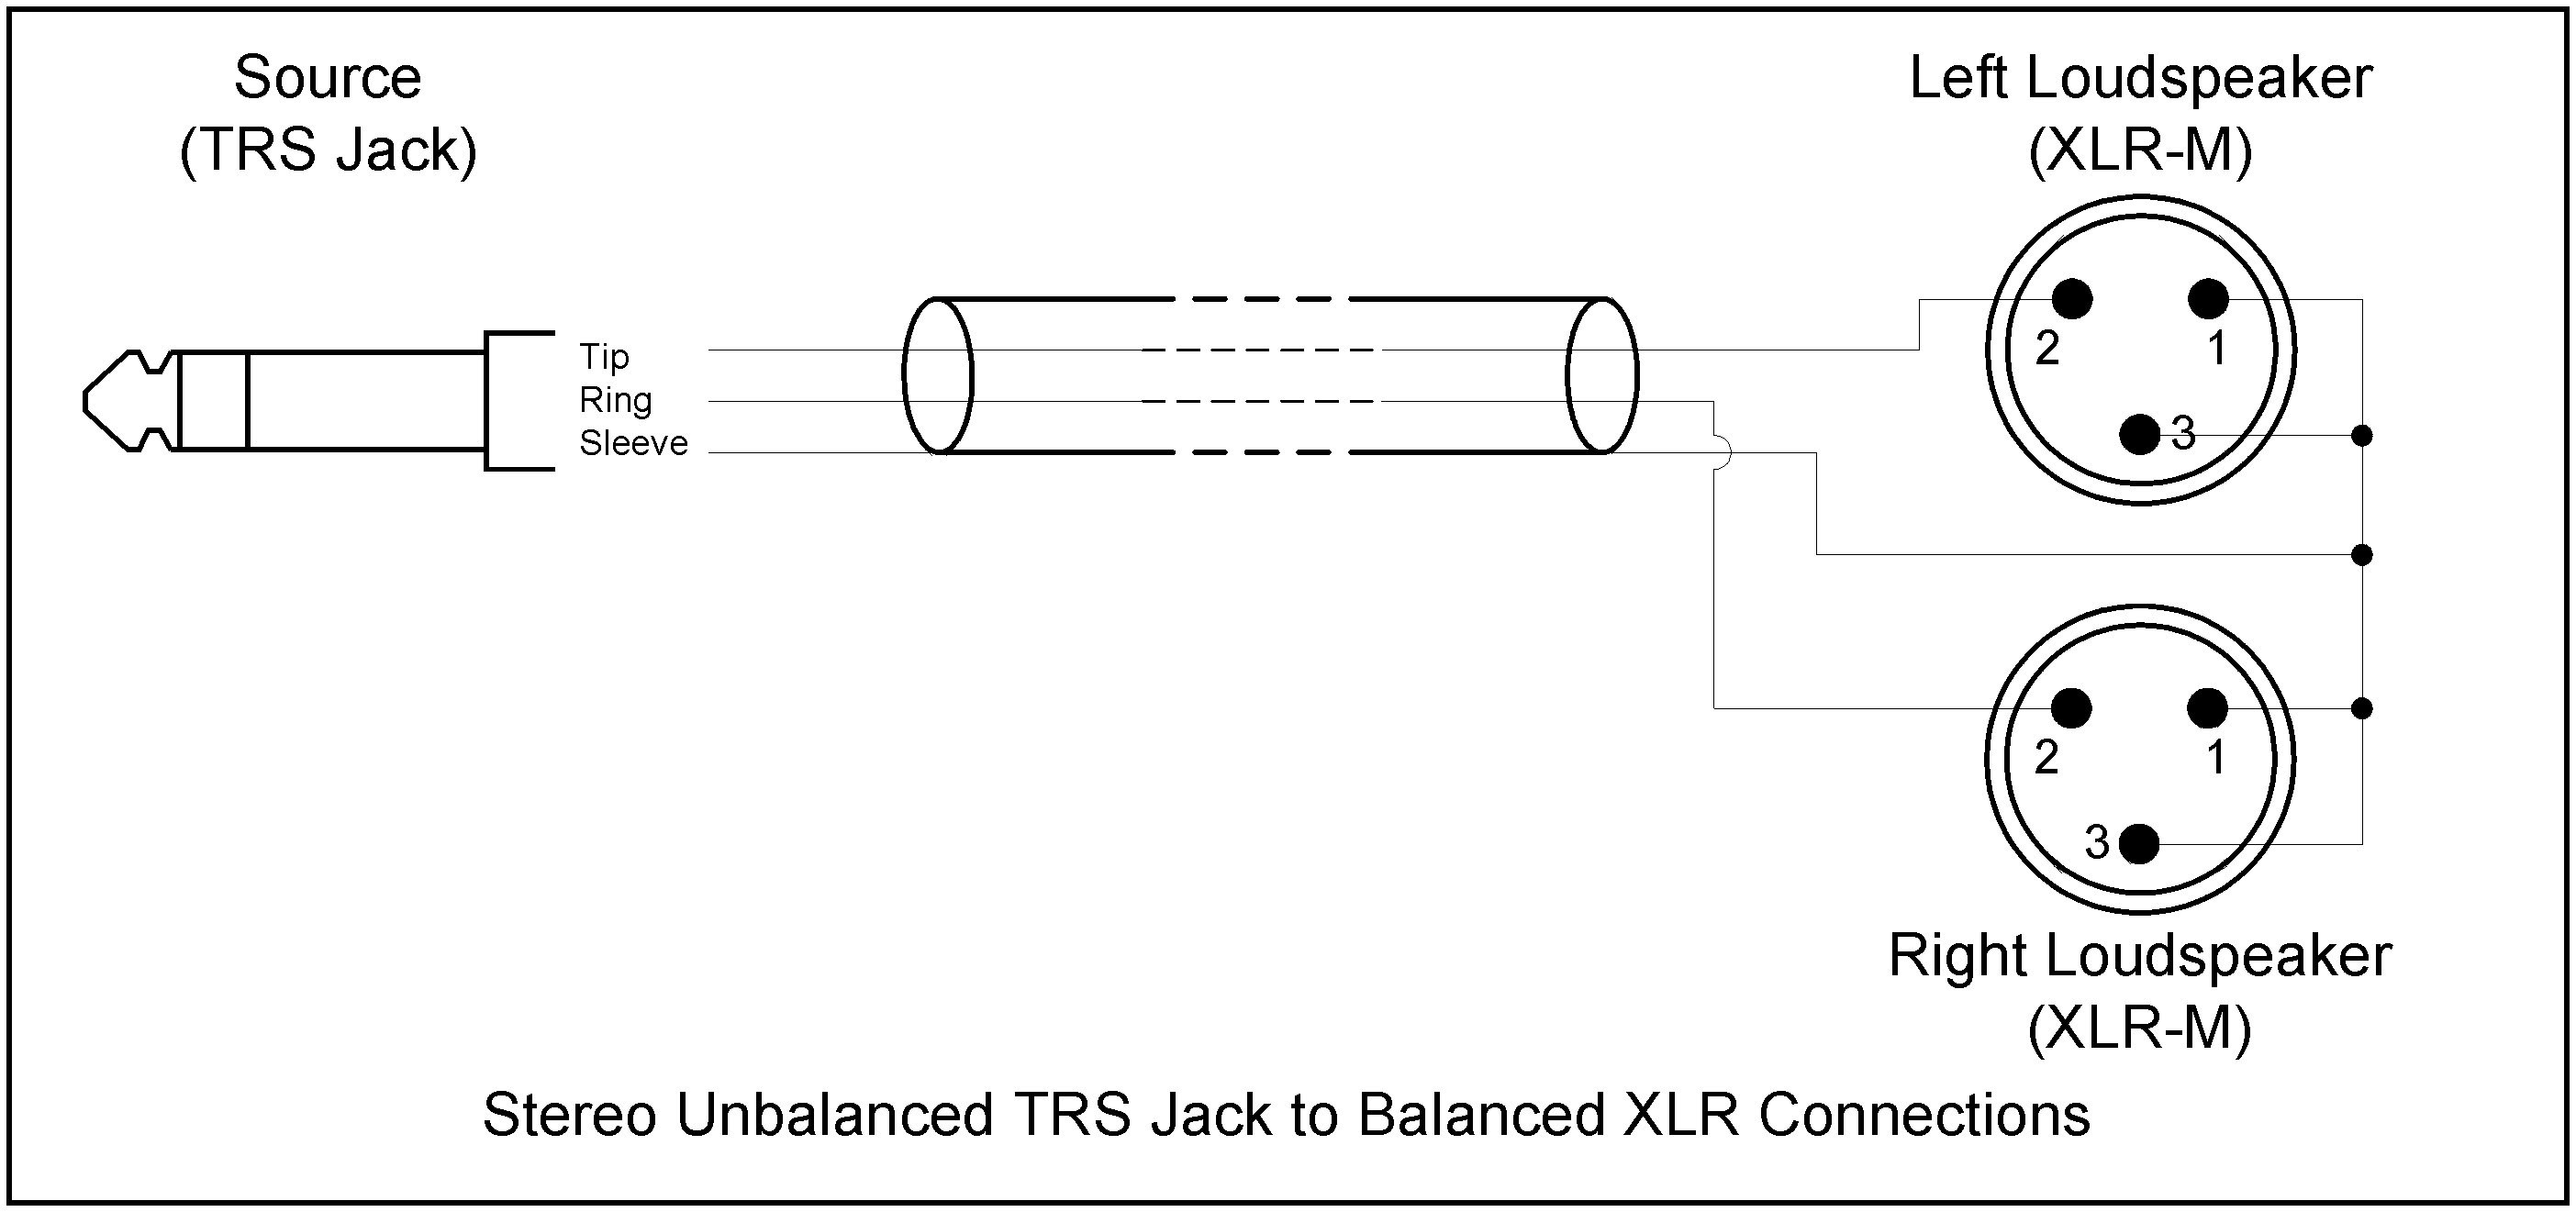 xlr to mono jack wiring diagram Download-Wiring Diagram For Xlr Inspirationa Xlr To Mono Jack Wiring Diagram Luxury Xlr Wiring Diagram Wiring 4-e